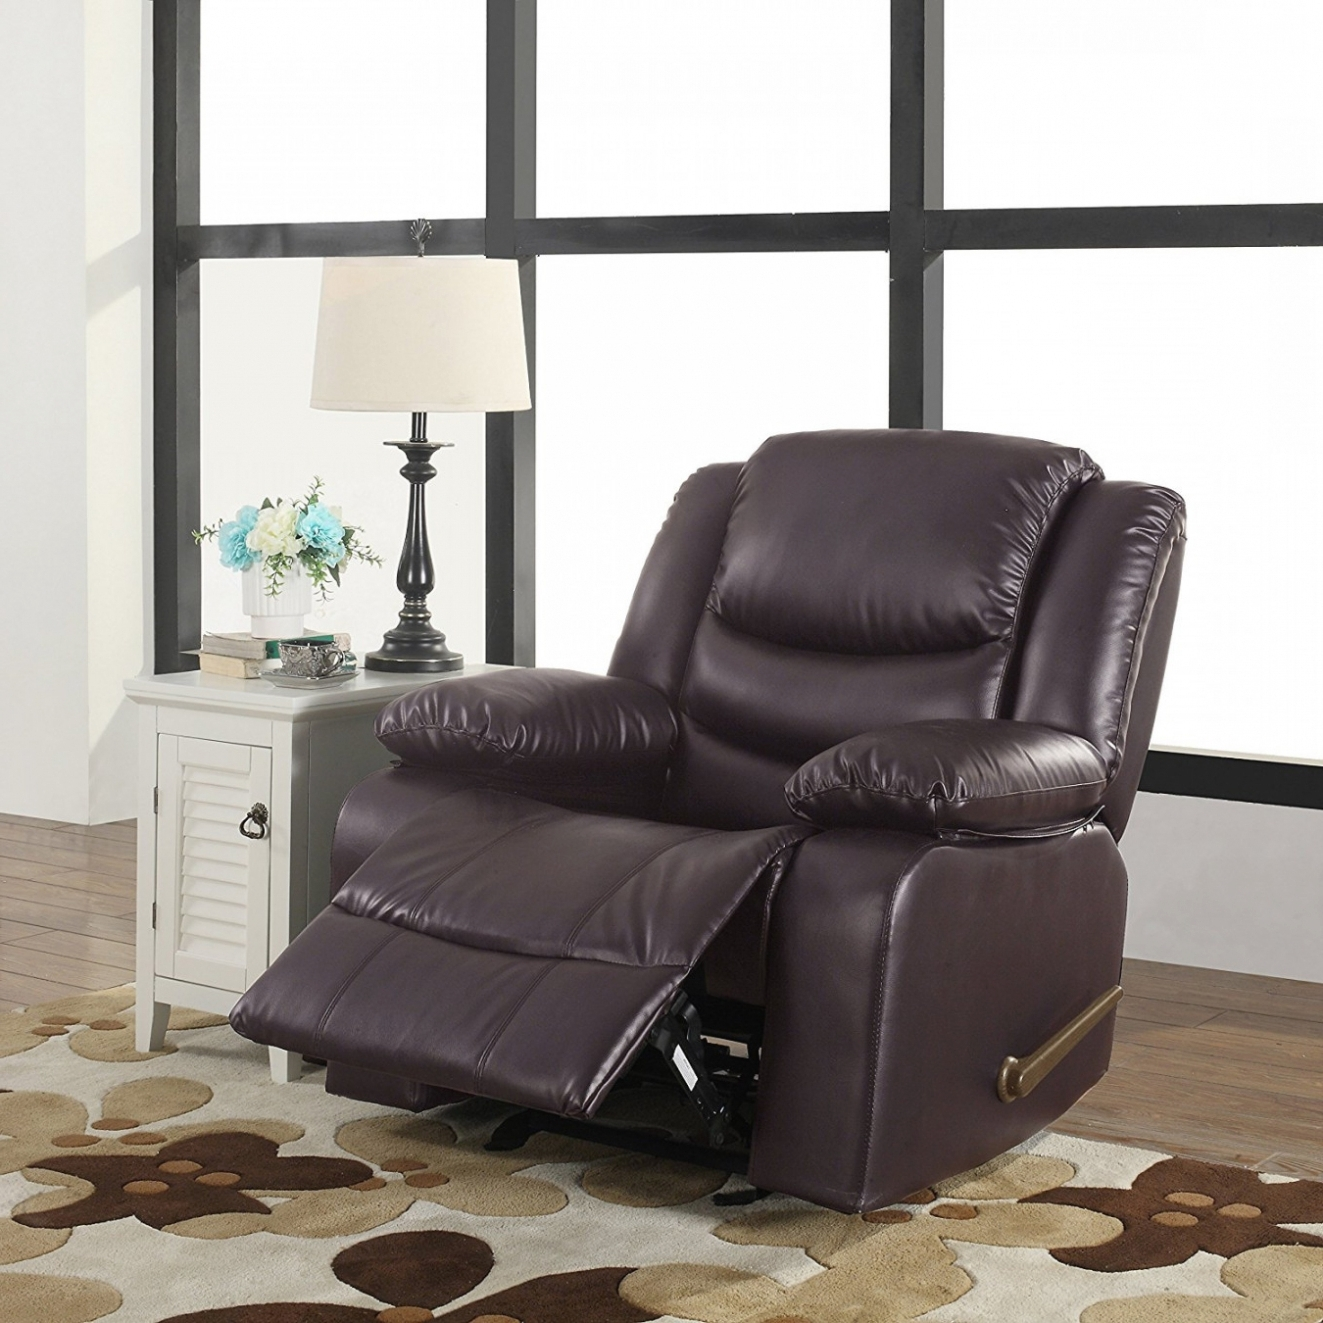 Recent Living Room: Lane Dudley Leather Rocker Recliner Sam S Club With In Rocking Chairs At Sam's Club (View 13 of 20)